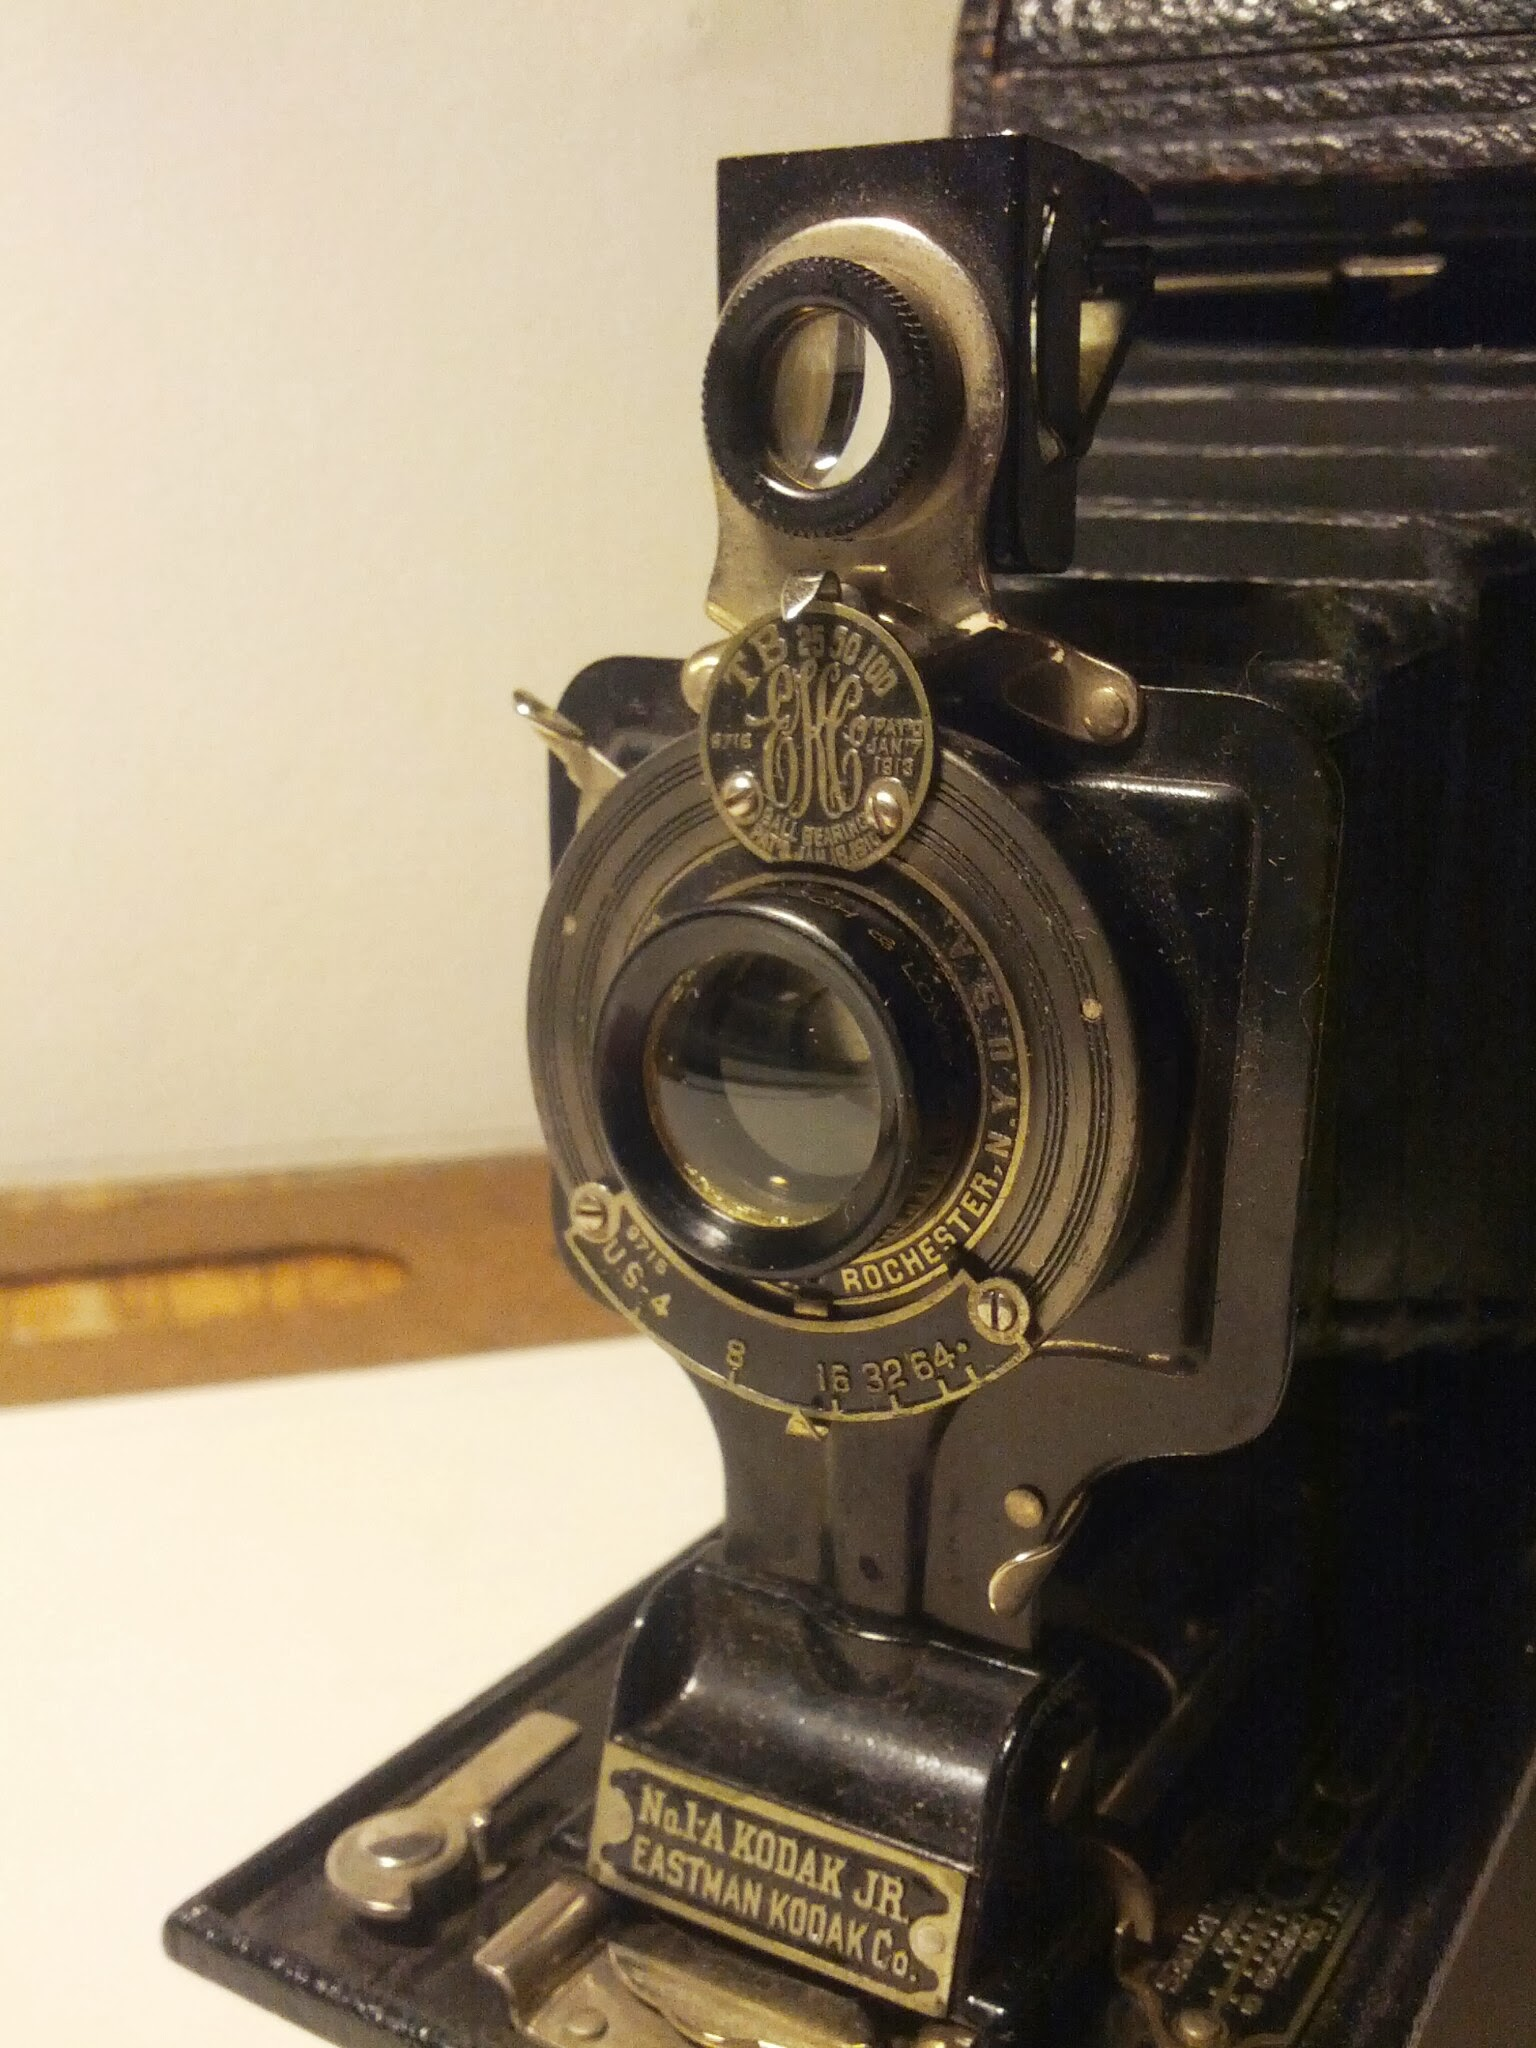 Gallery: Kodak No. 1a